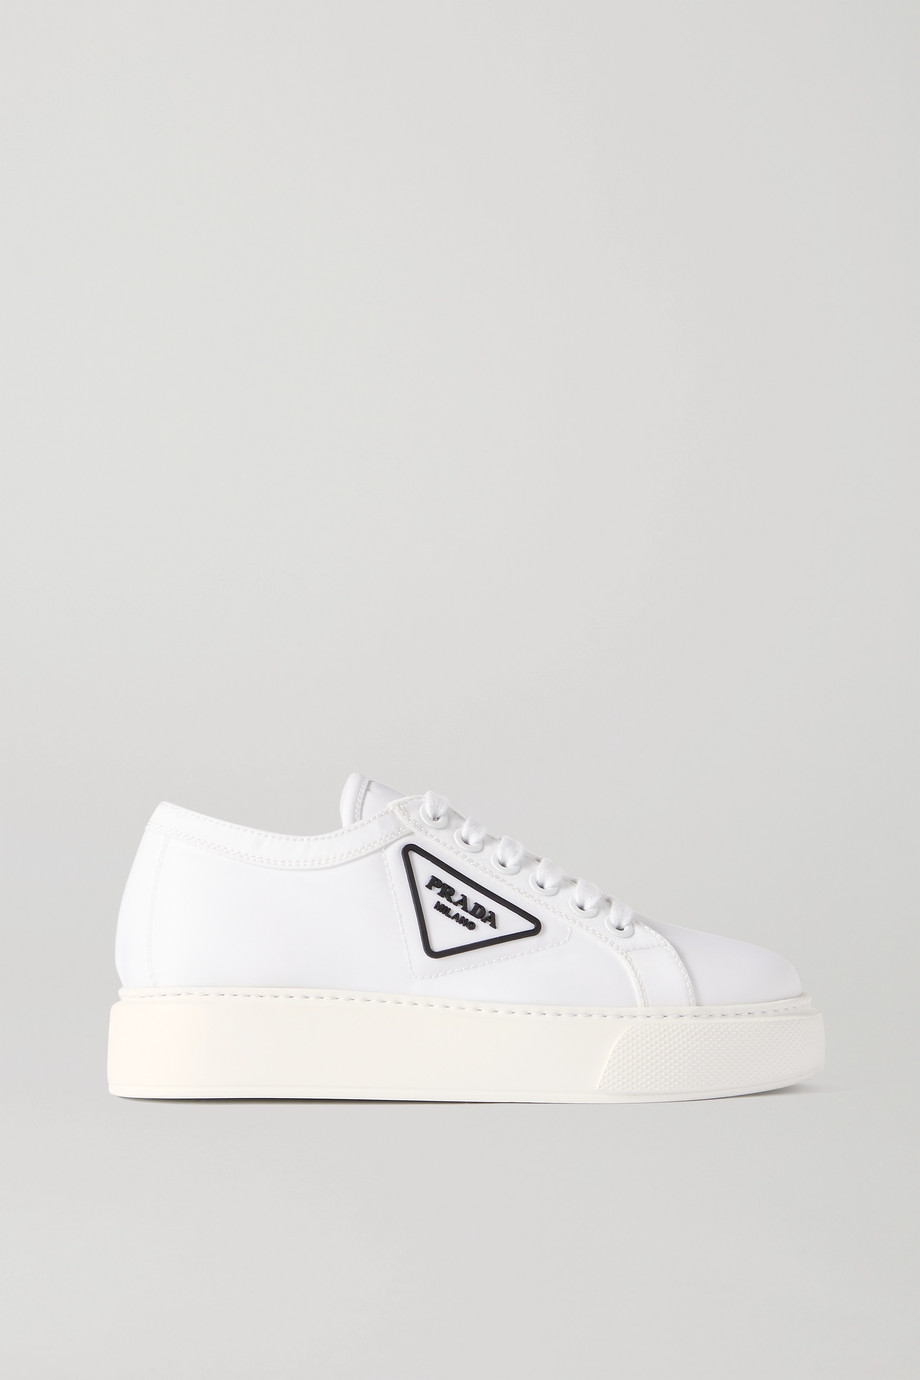 Prada Logo-detailed nylon sneakers